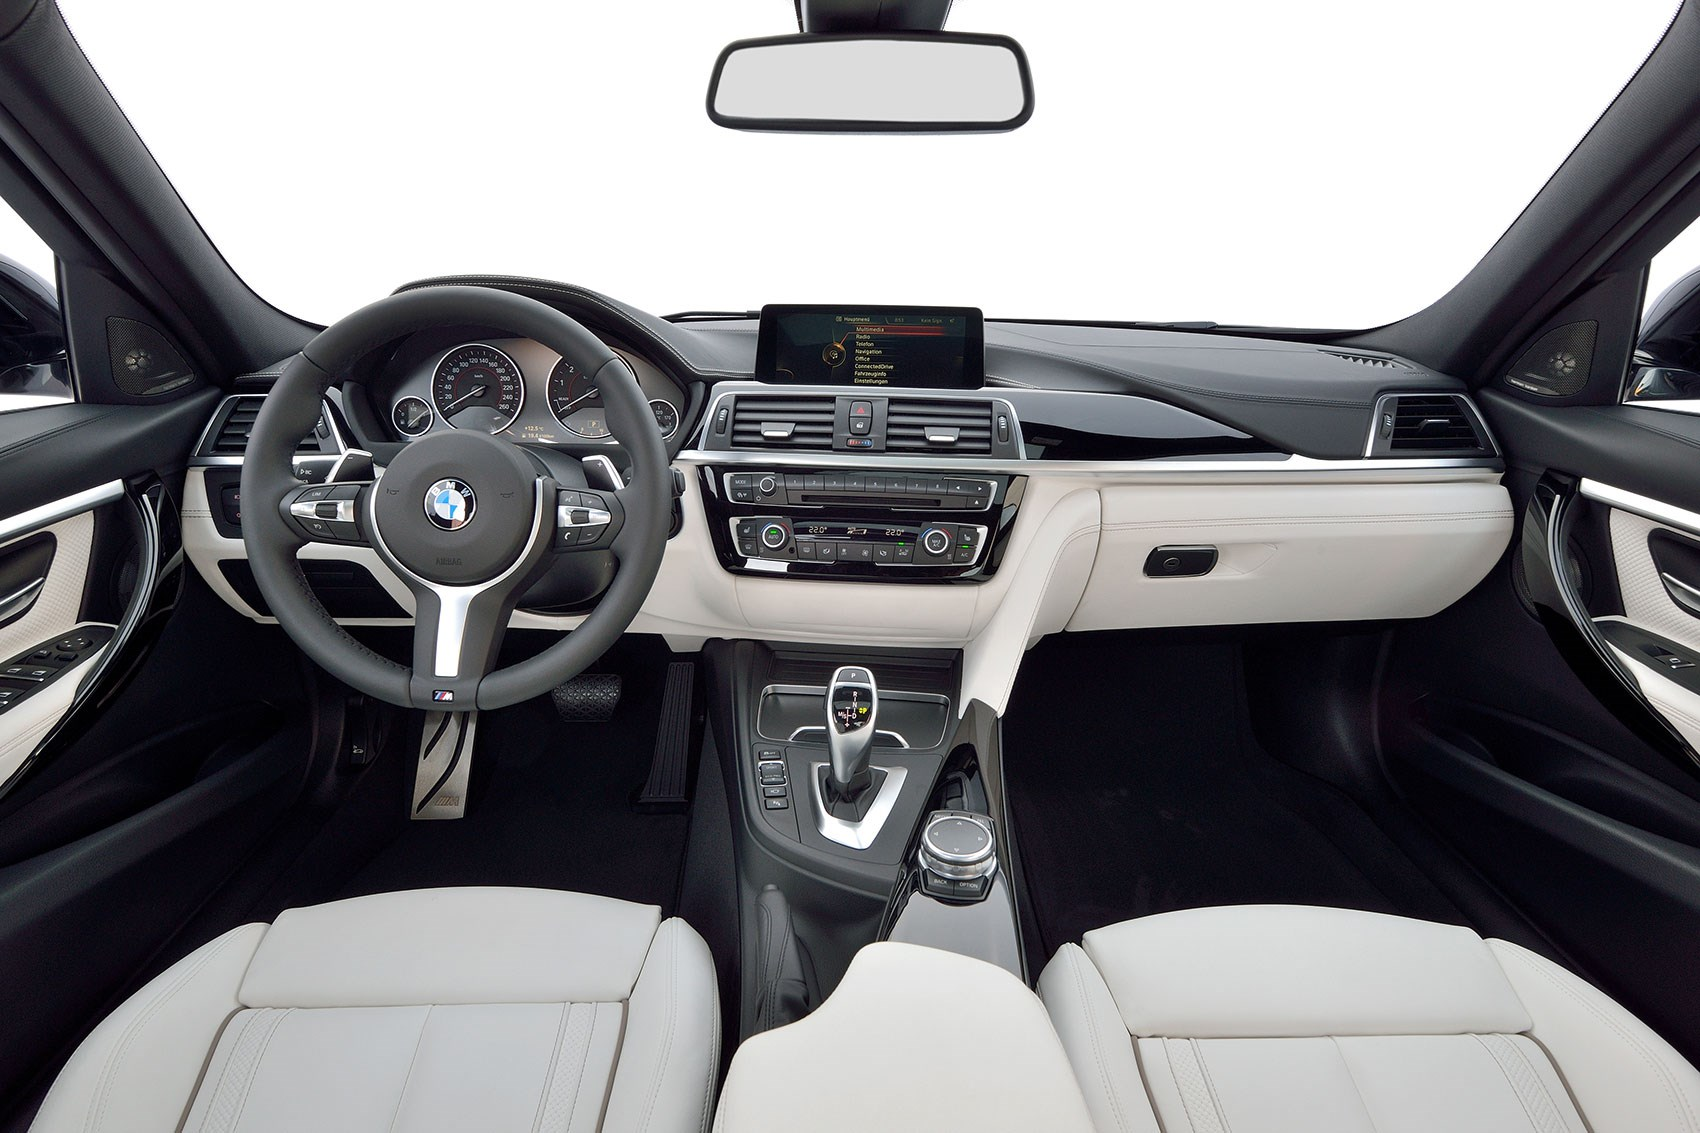 New BMW Series Facelift Revealed By CAR Magazine - 2015 new bmw